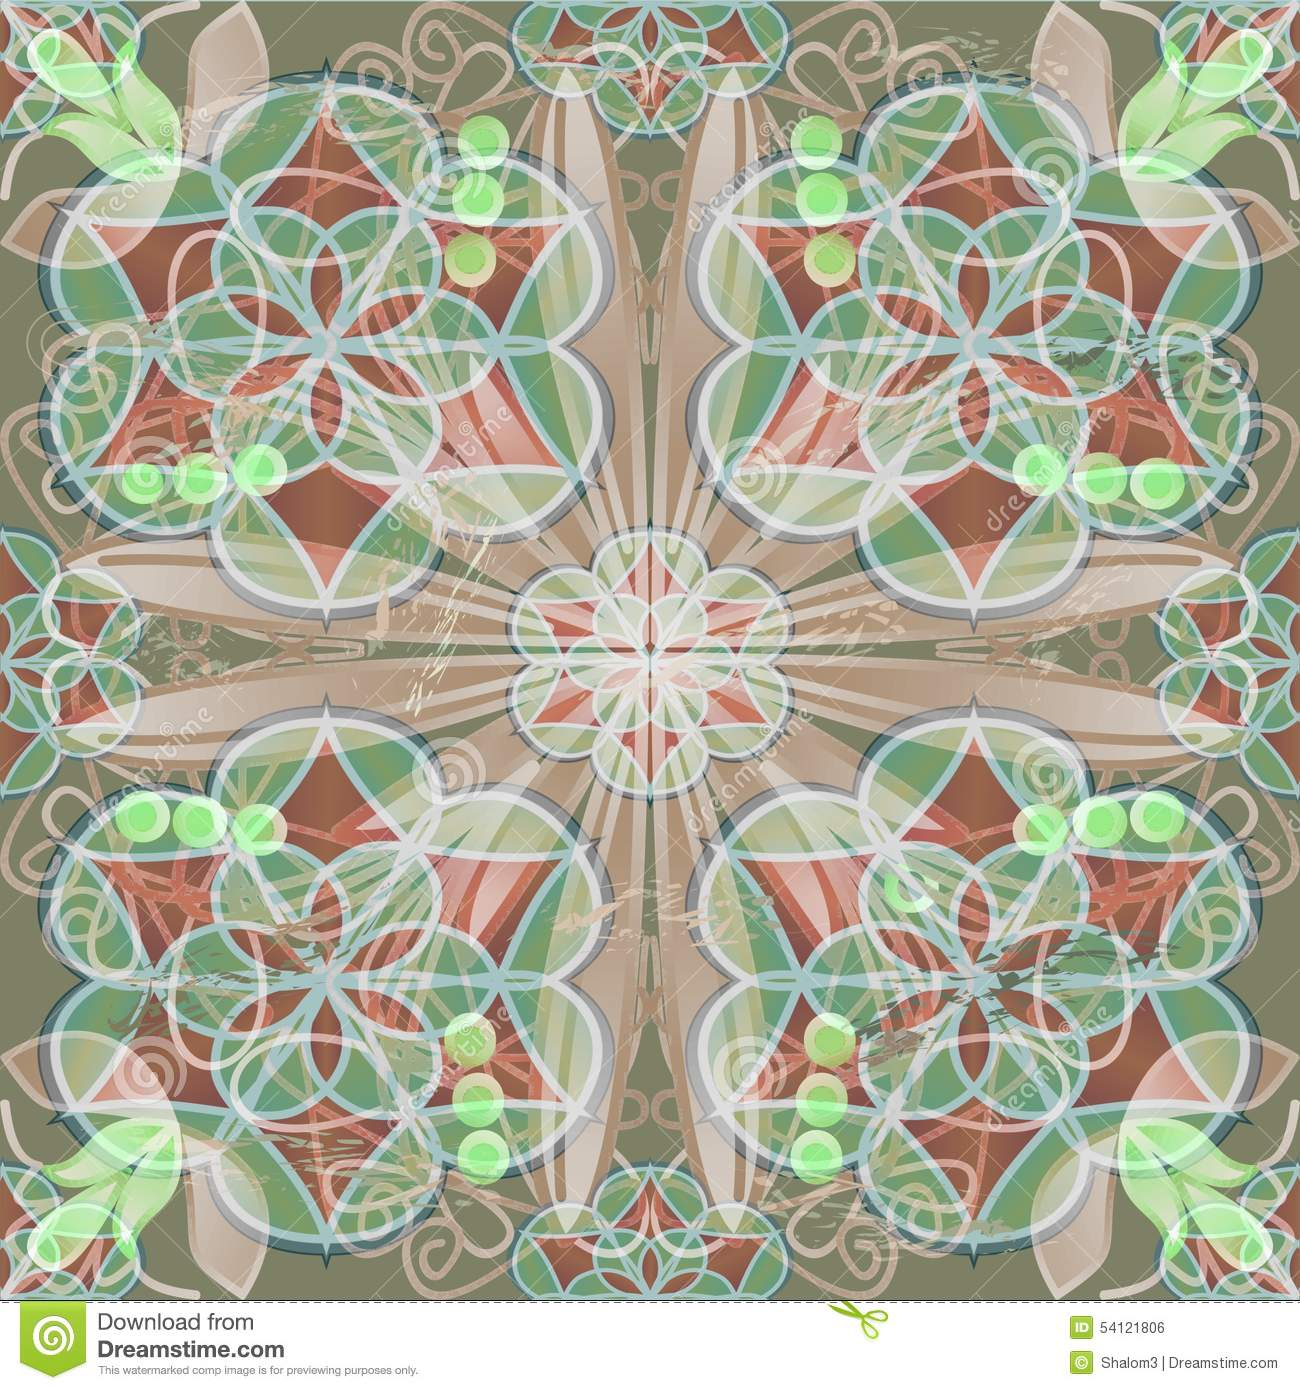 fine tile in art deco style with lace patterns in red and green